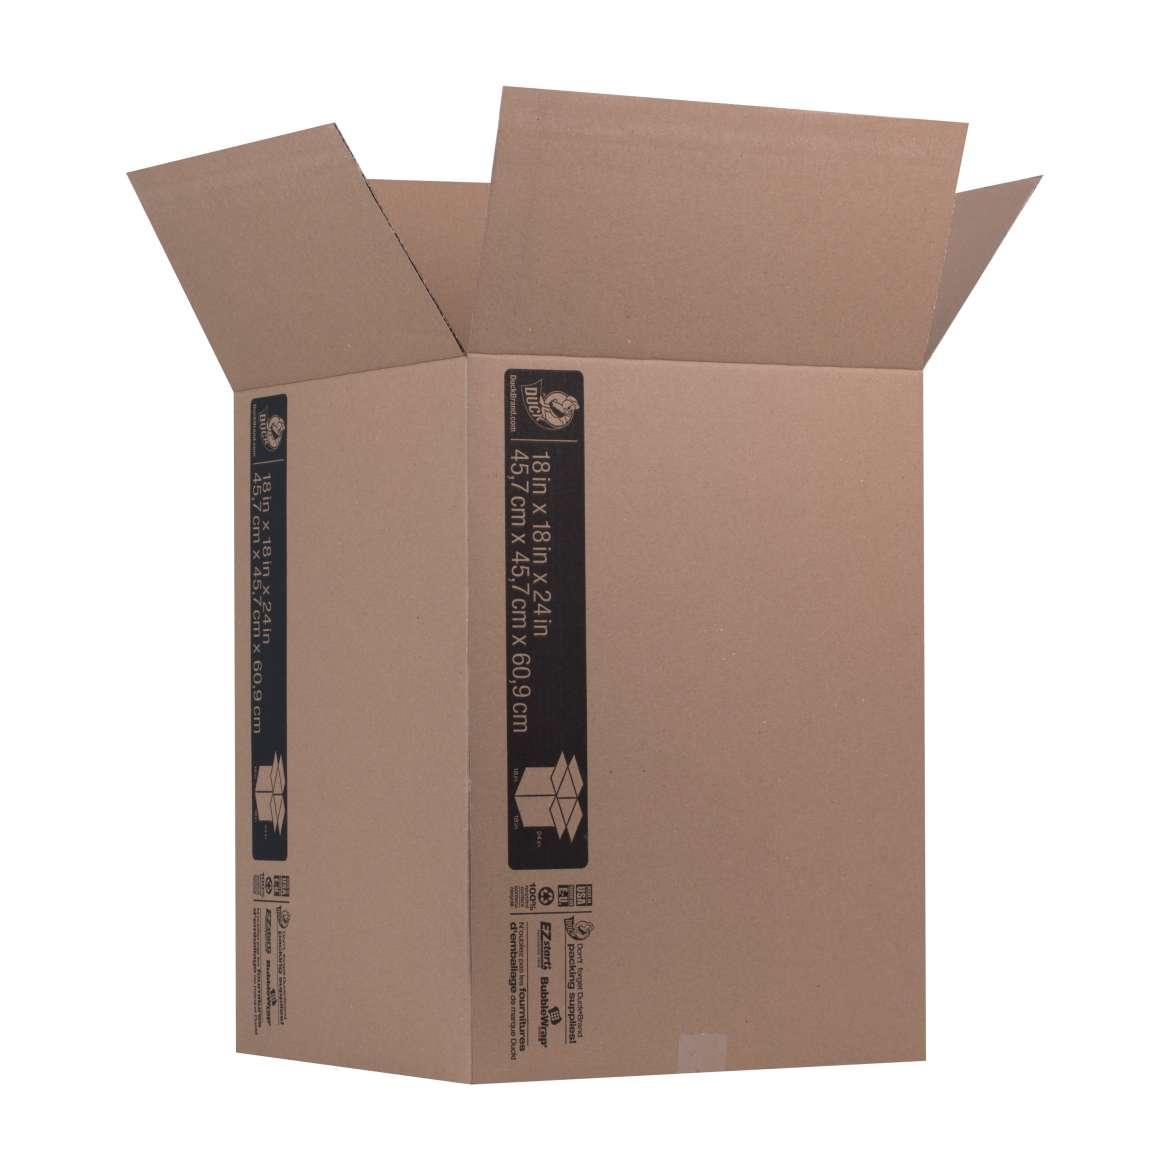 Duck® Brand Kraft Box - Brown, 18 in. x 18 in. x 24 in. Image